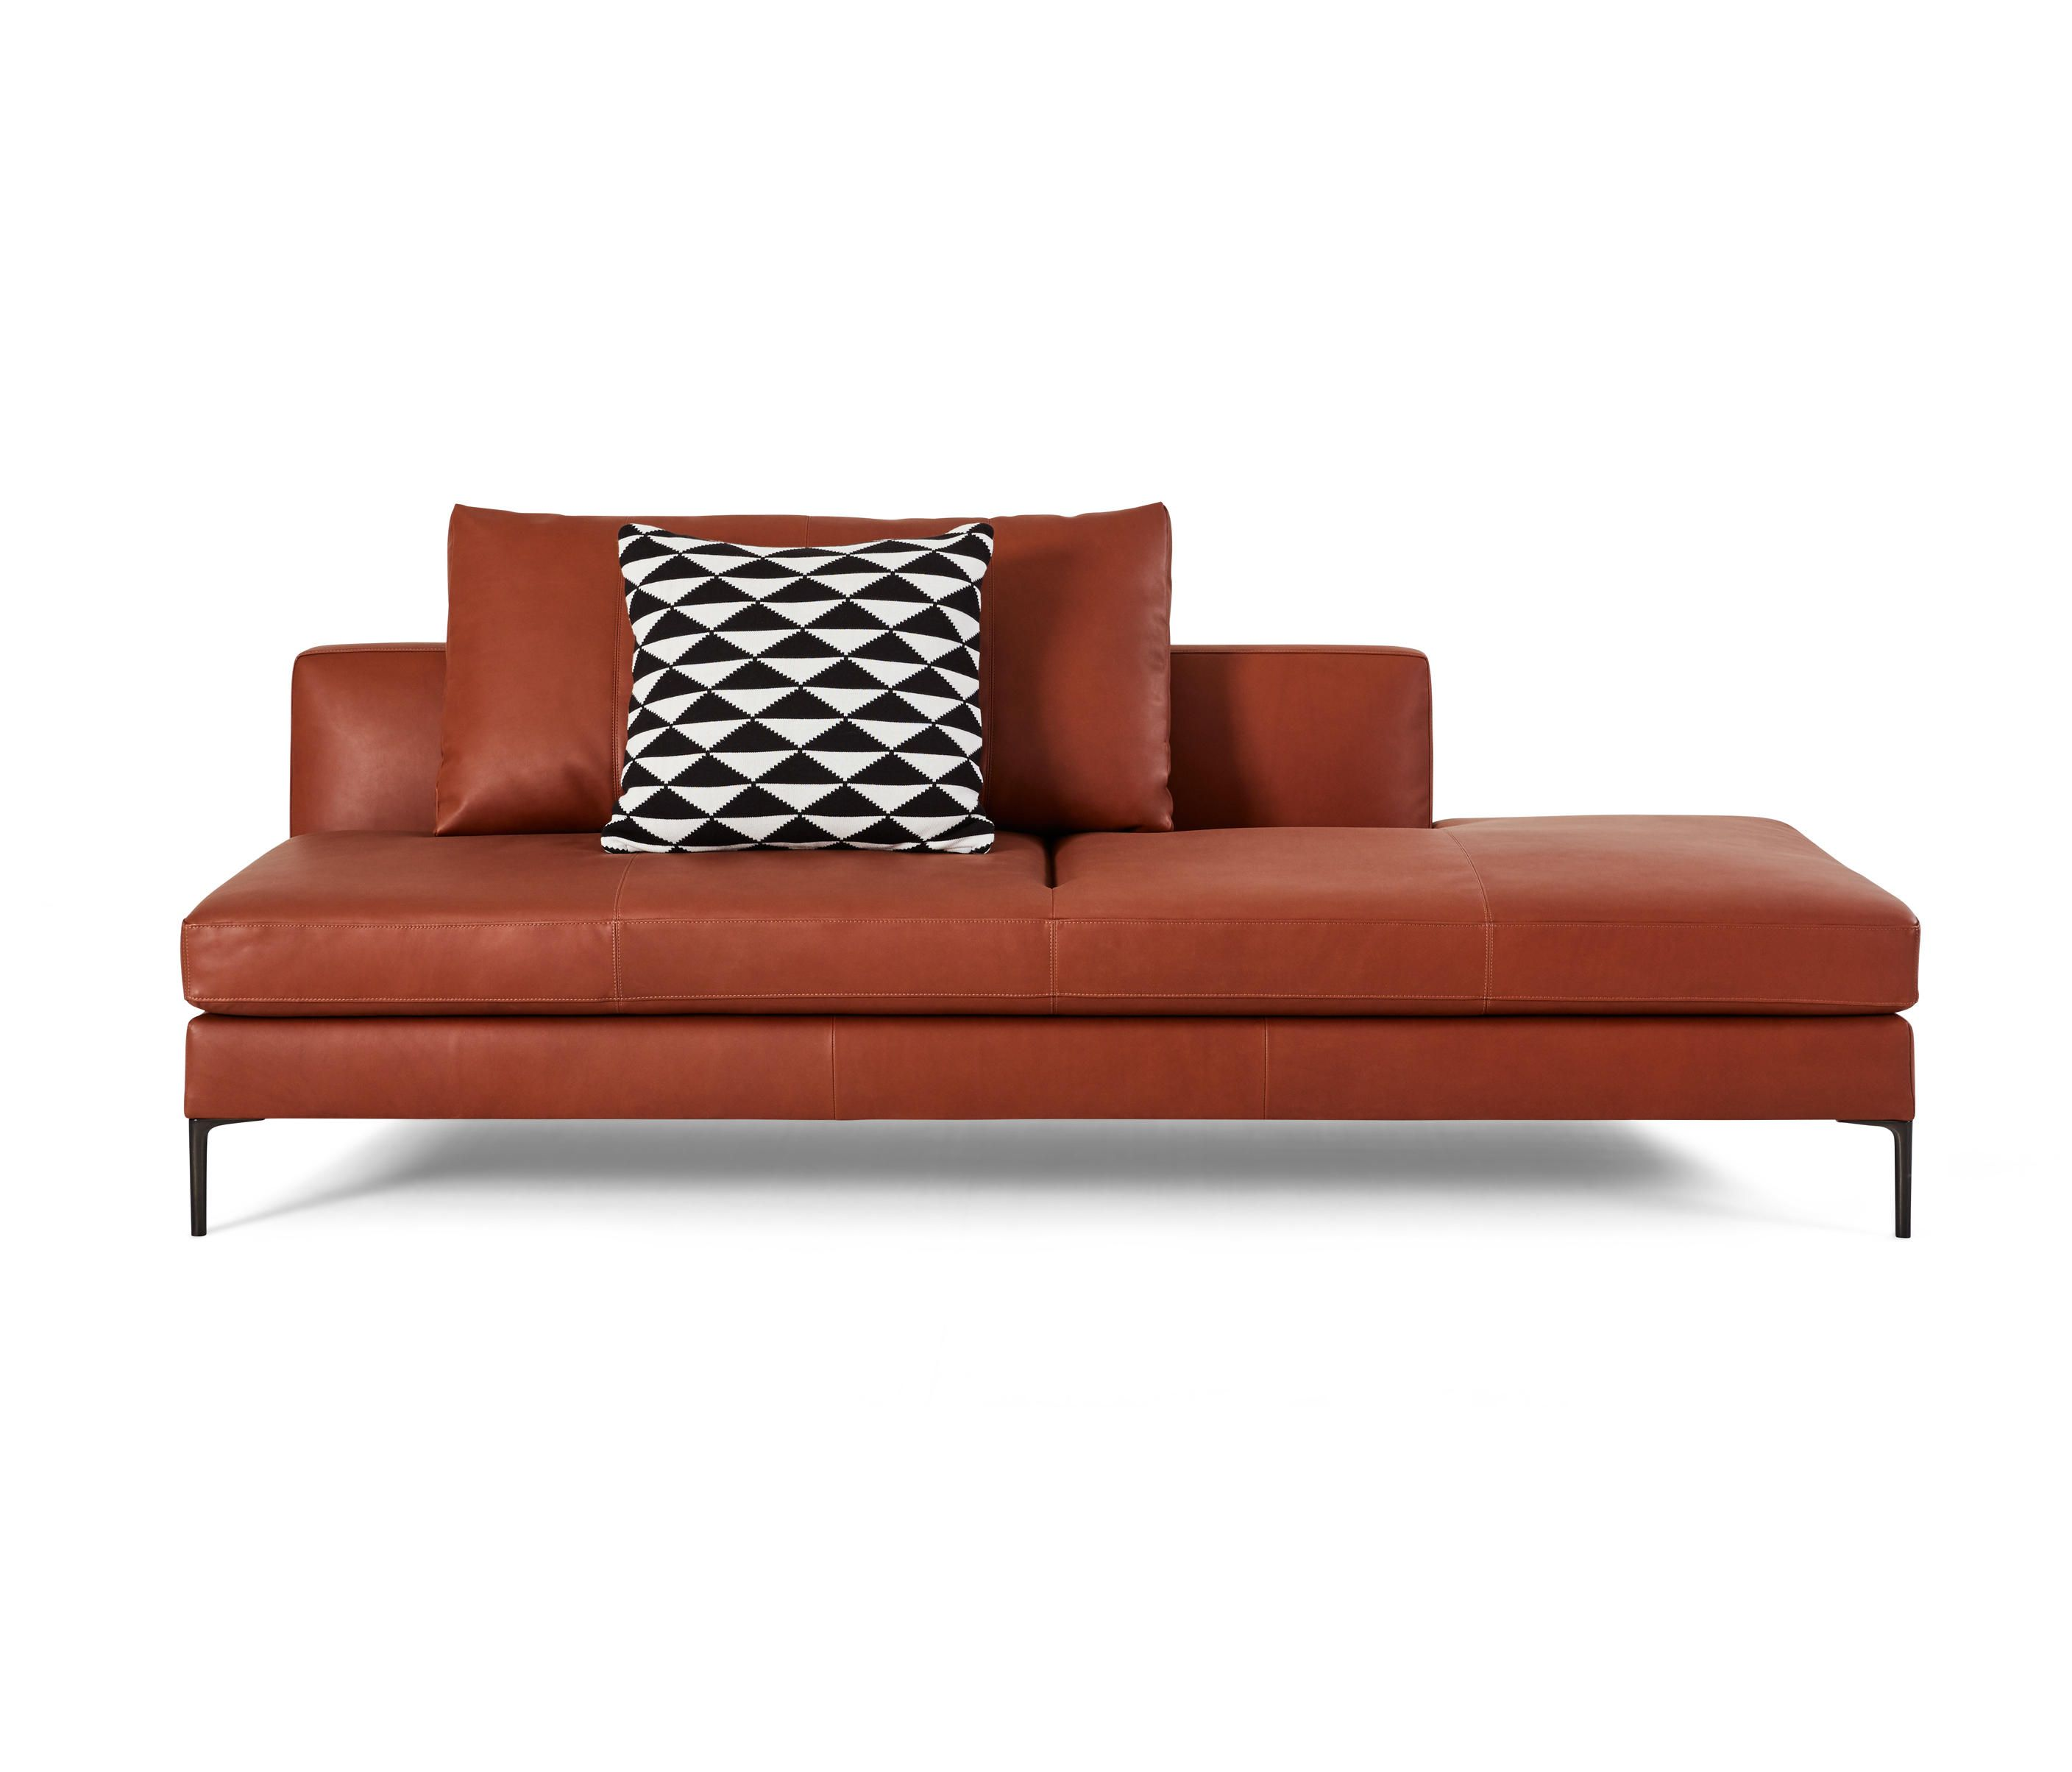 daley designer lounge sofas from montis all information high rh pinterest com